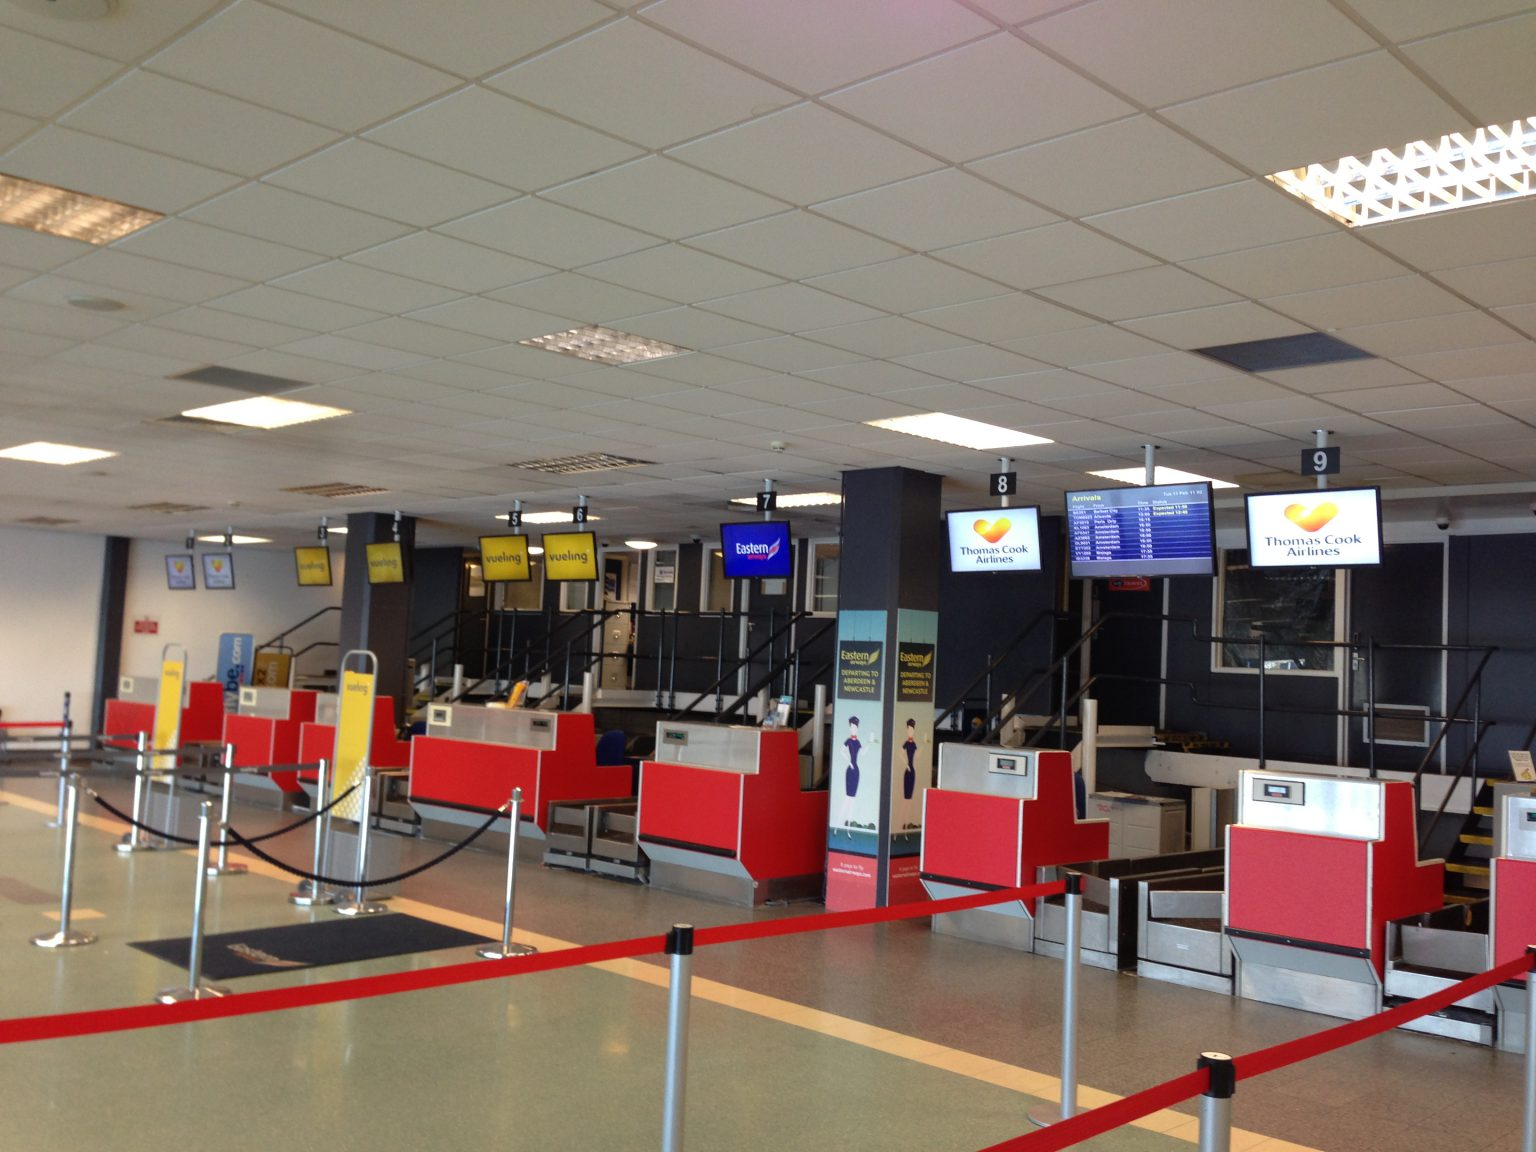 Ceiling-mounted check-in desks screens